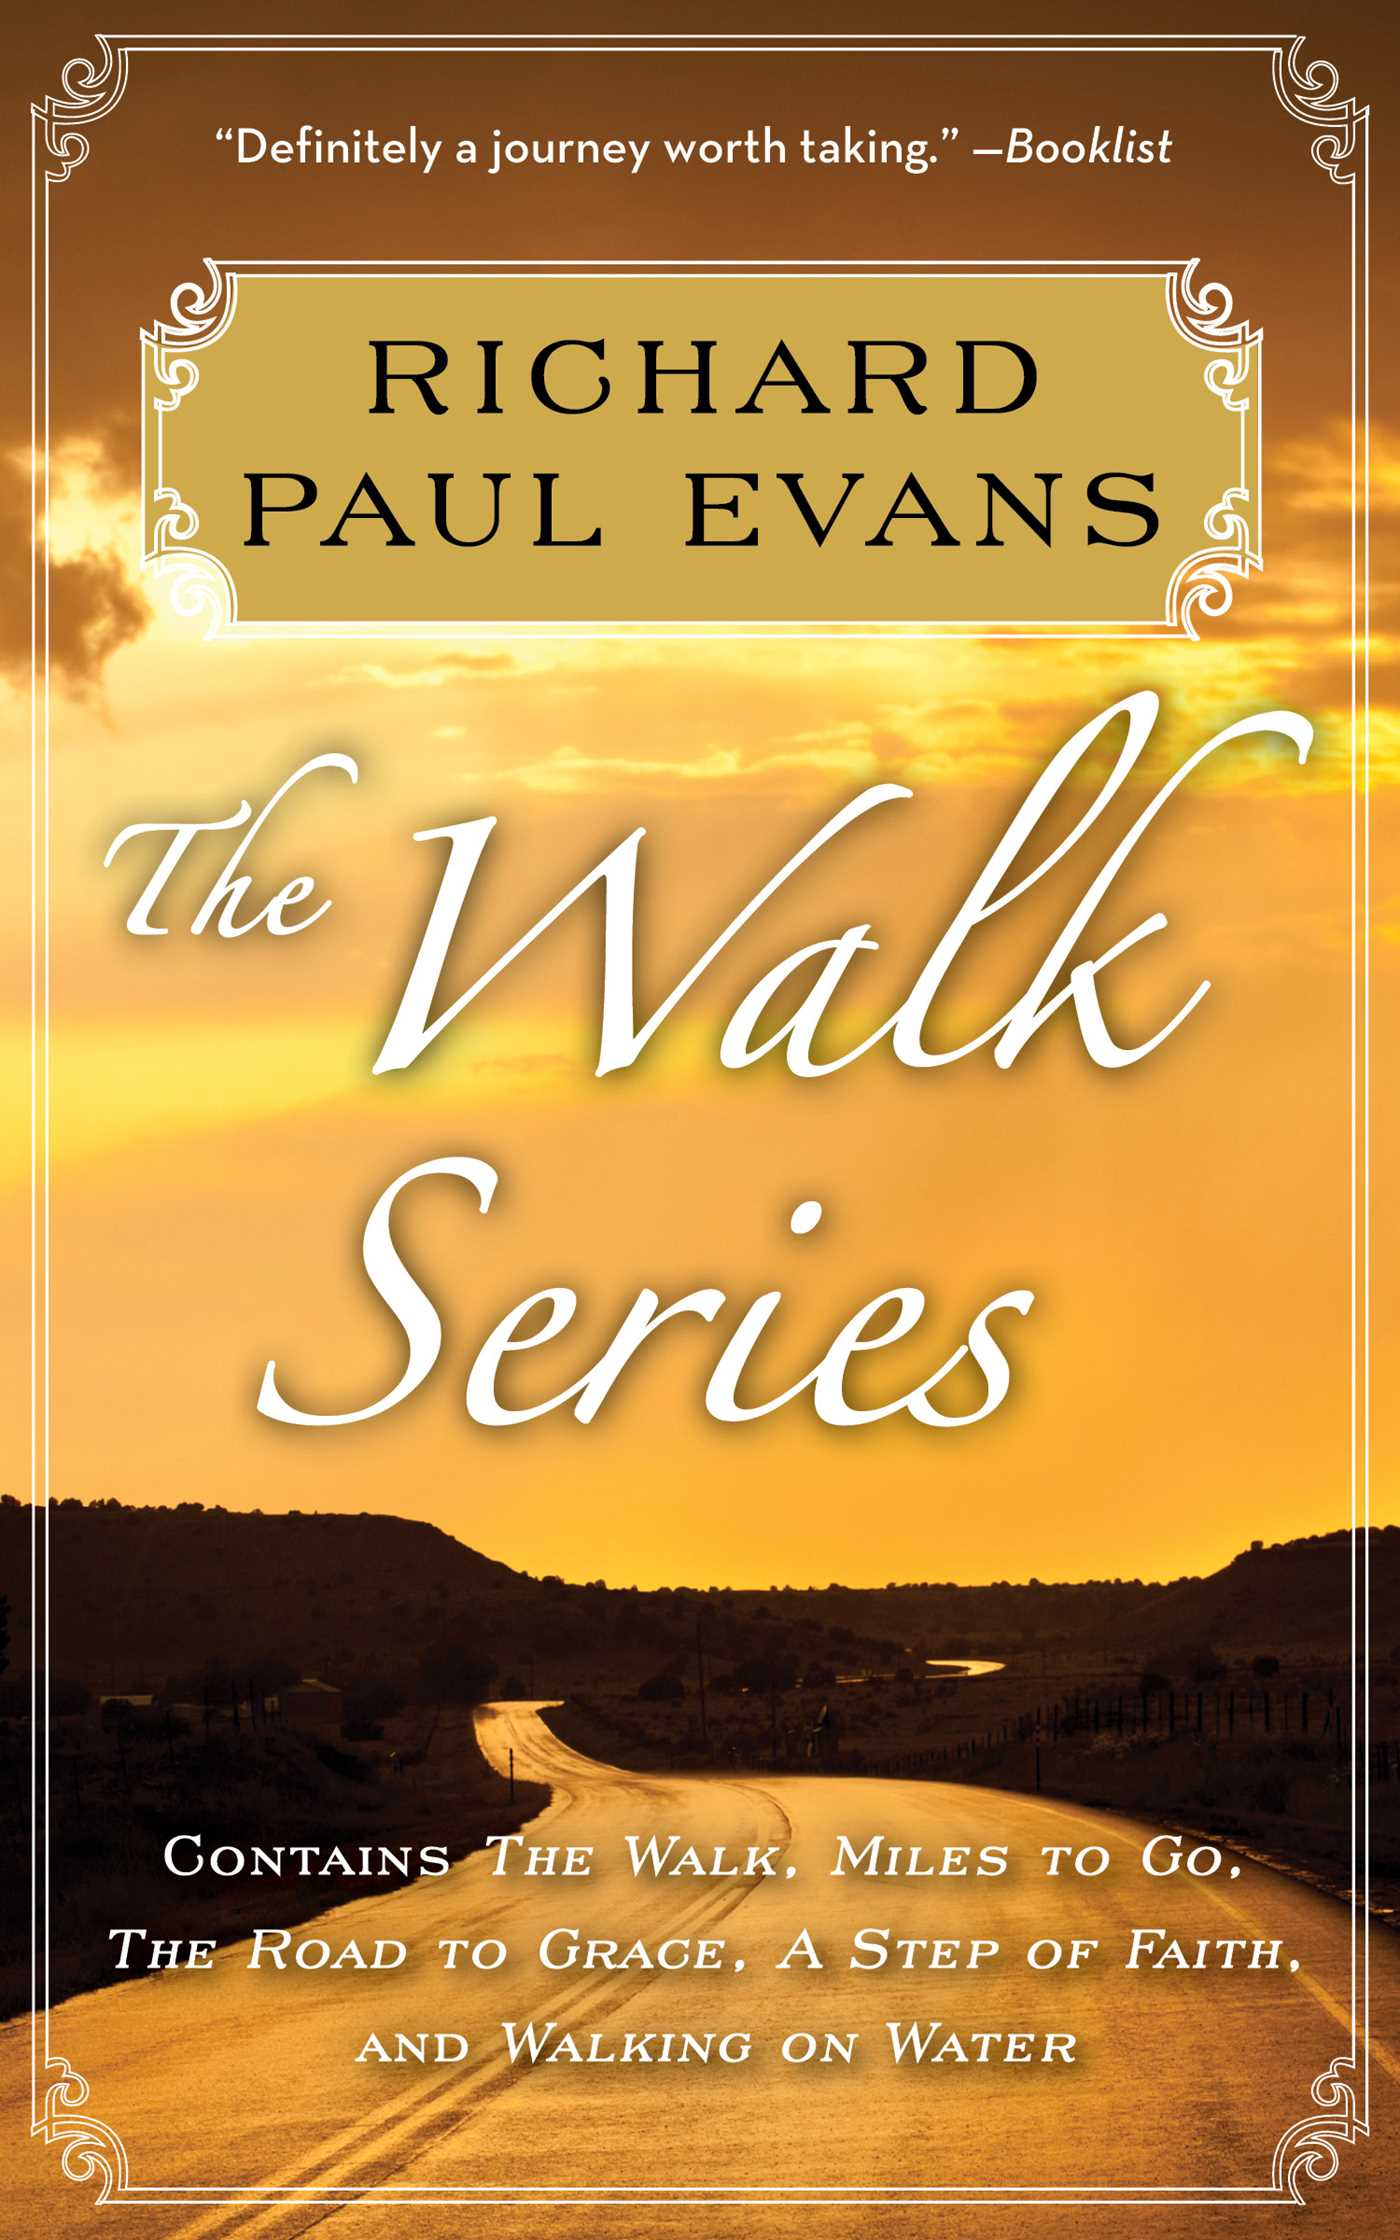 Richard-paul-evans-the-complete-walk-series-set-9781476789170_hr